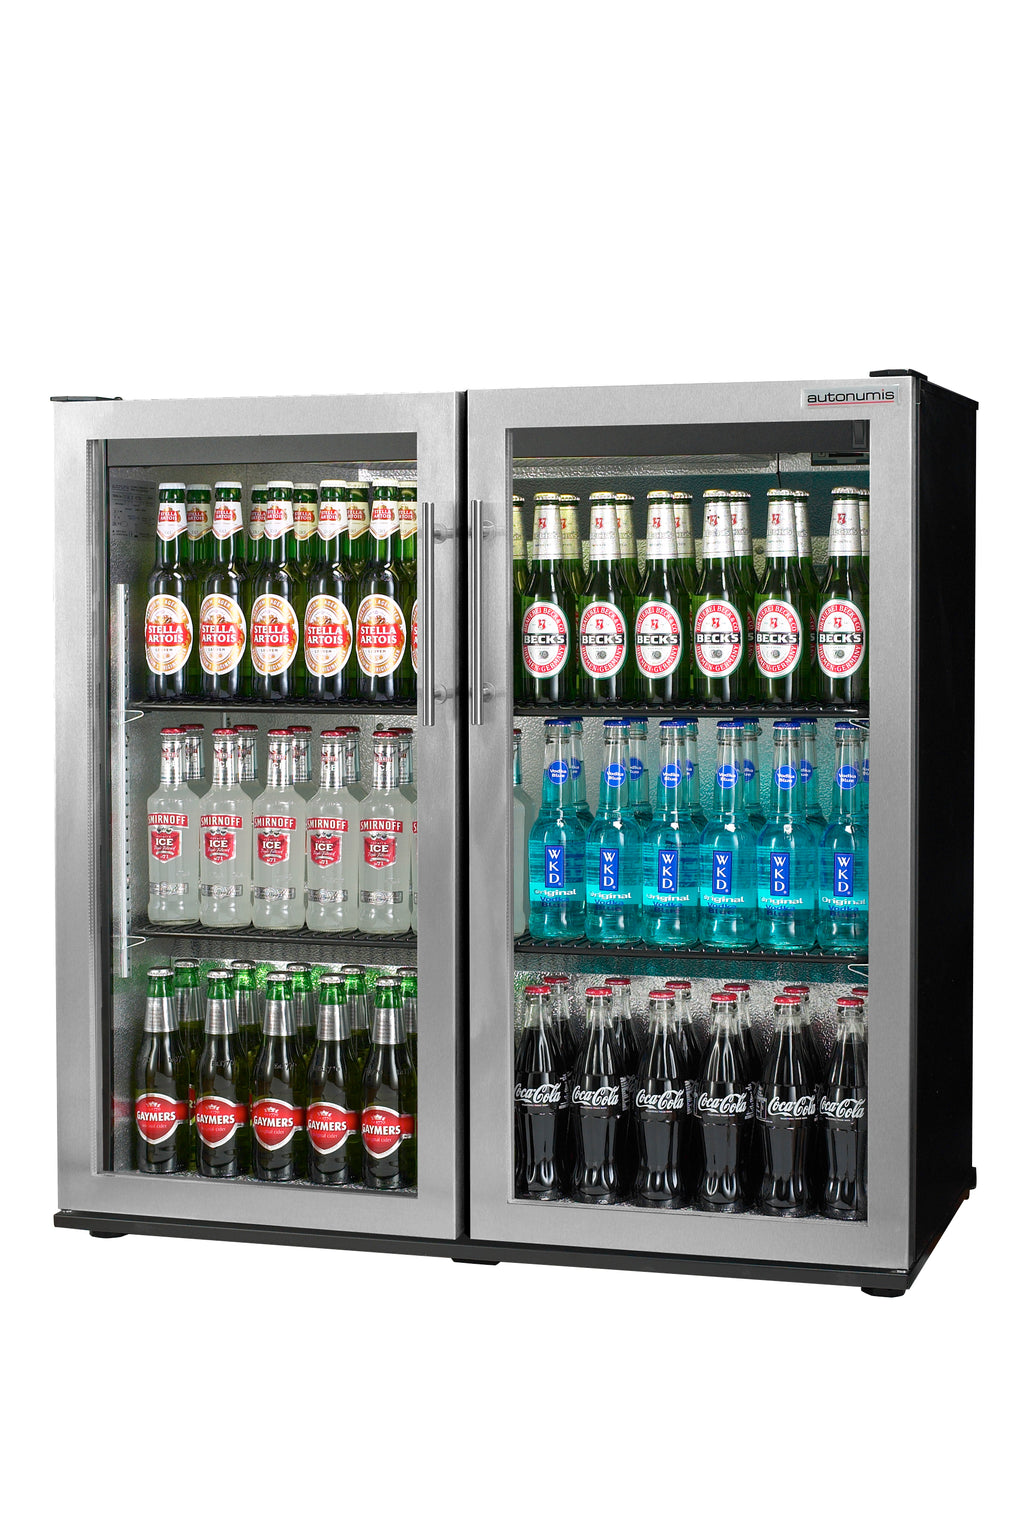 Autonumis Two Door Maxi Bottle Cooler Fridge Stainless Steel : RHC00002